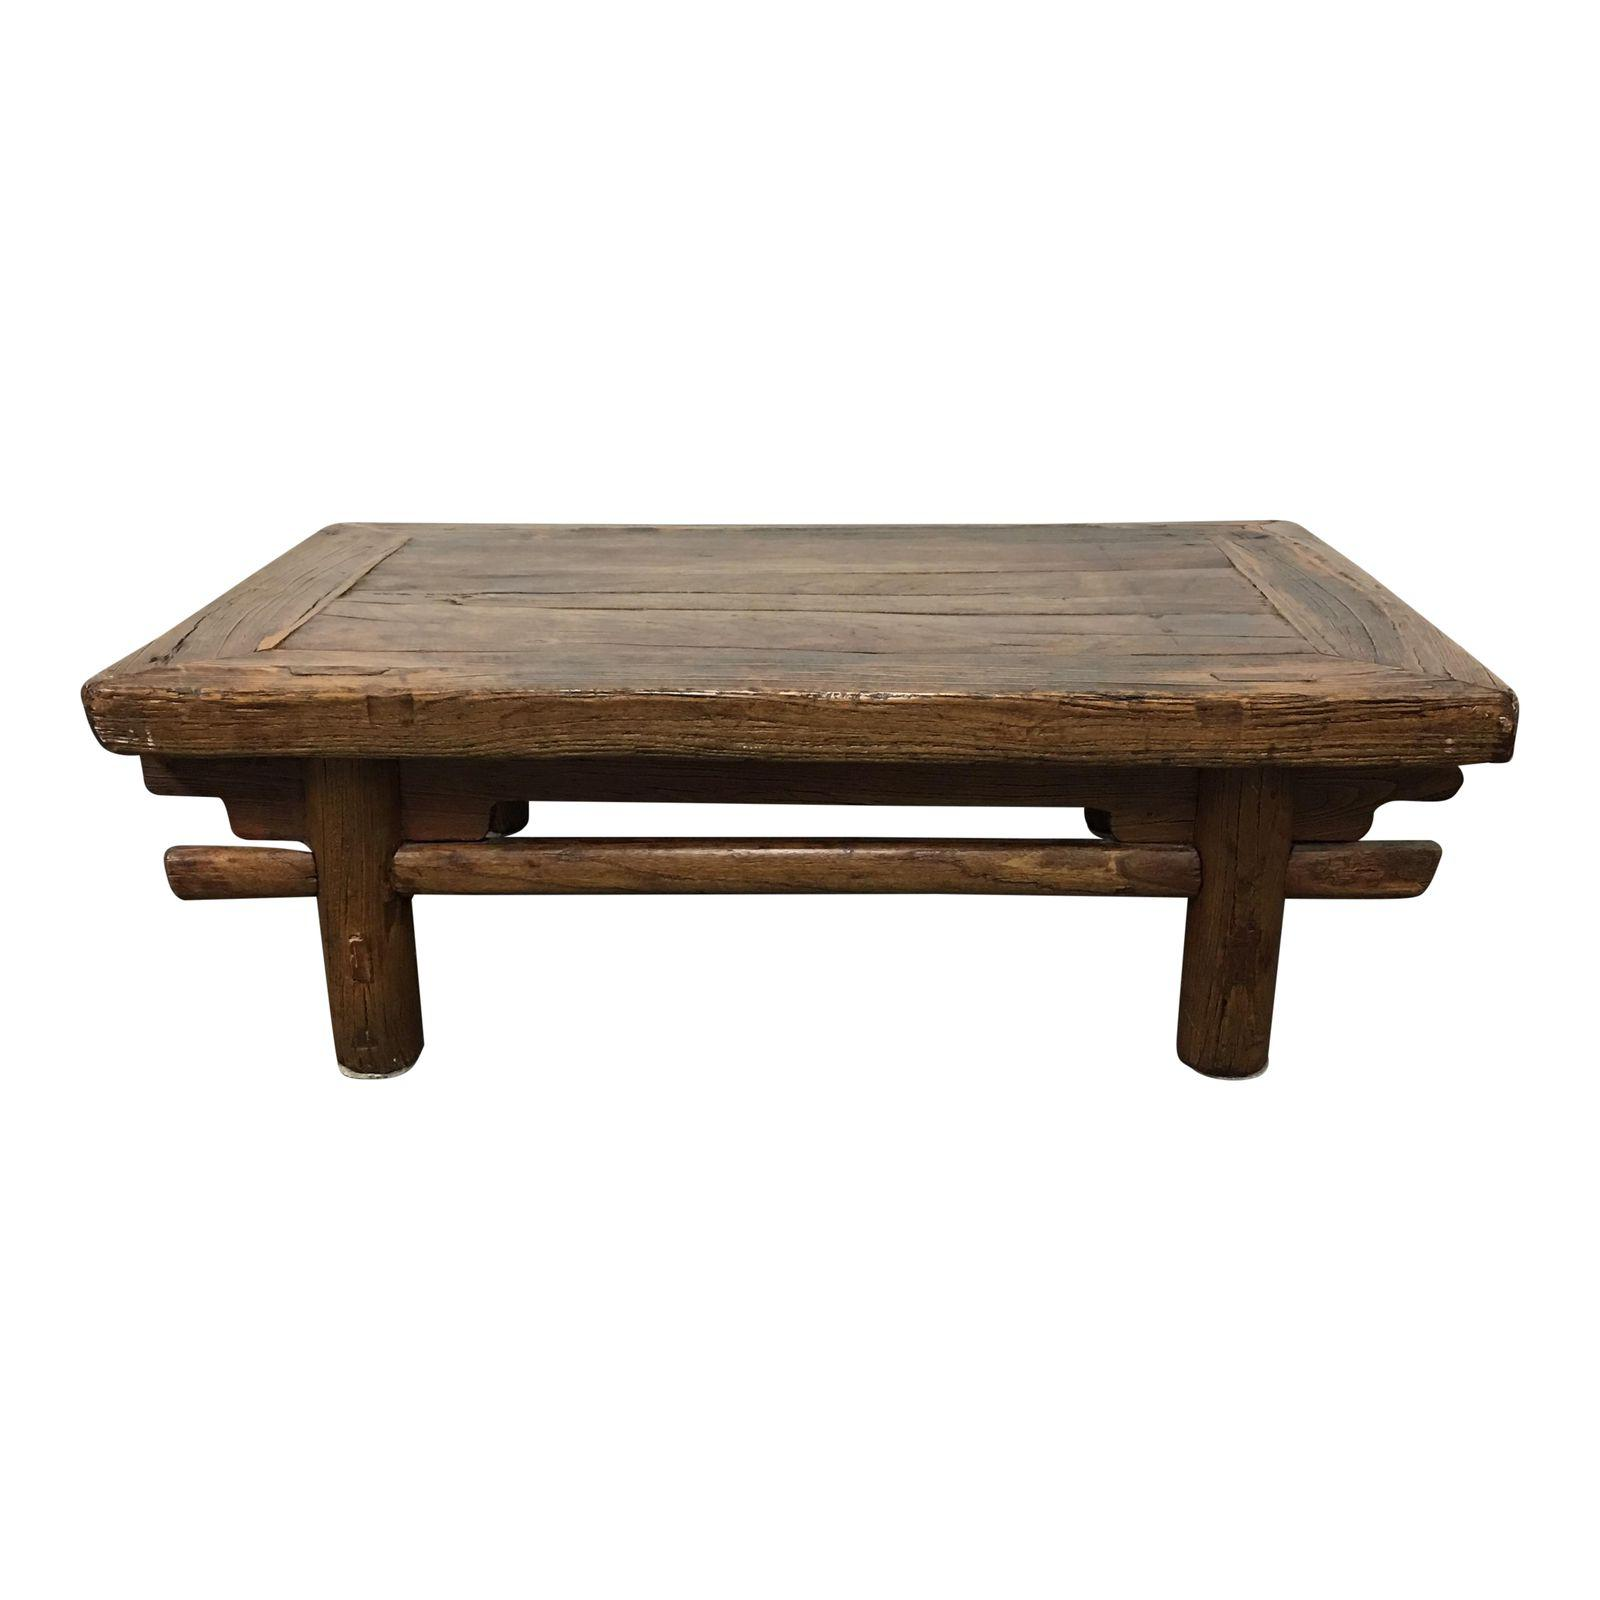 Antique Asian Low Coffee Table Design Plus Gallery